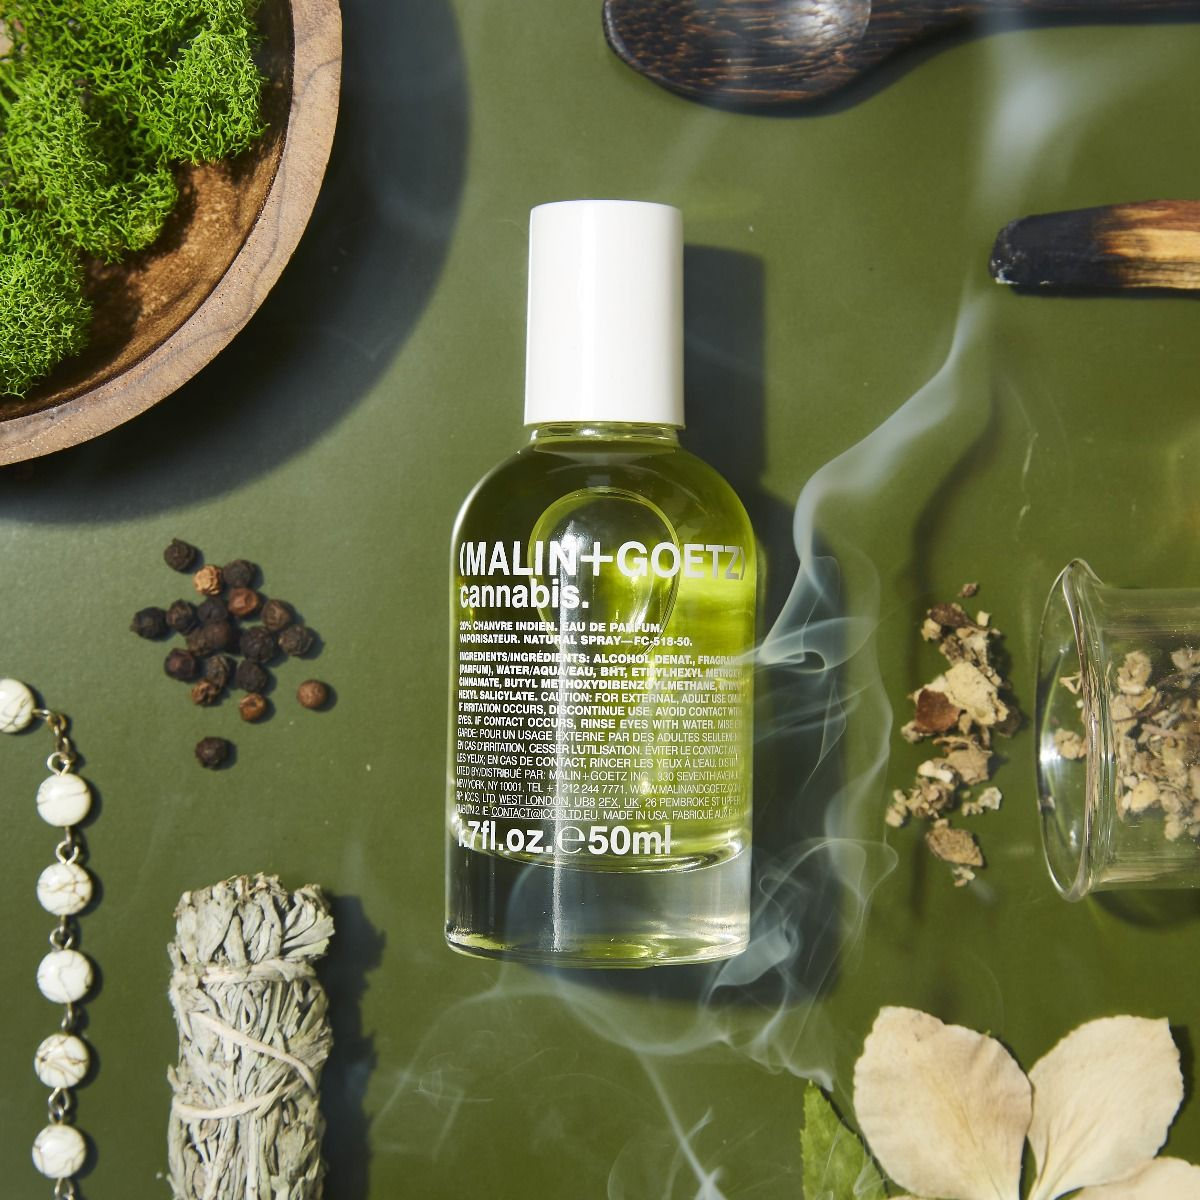 Product image of Malin + Goetz Cannabis eau de parfum